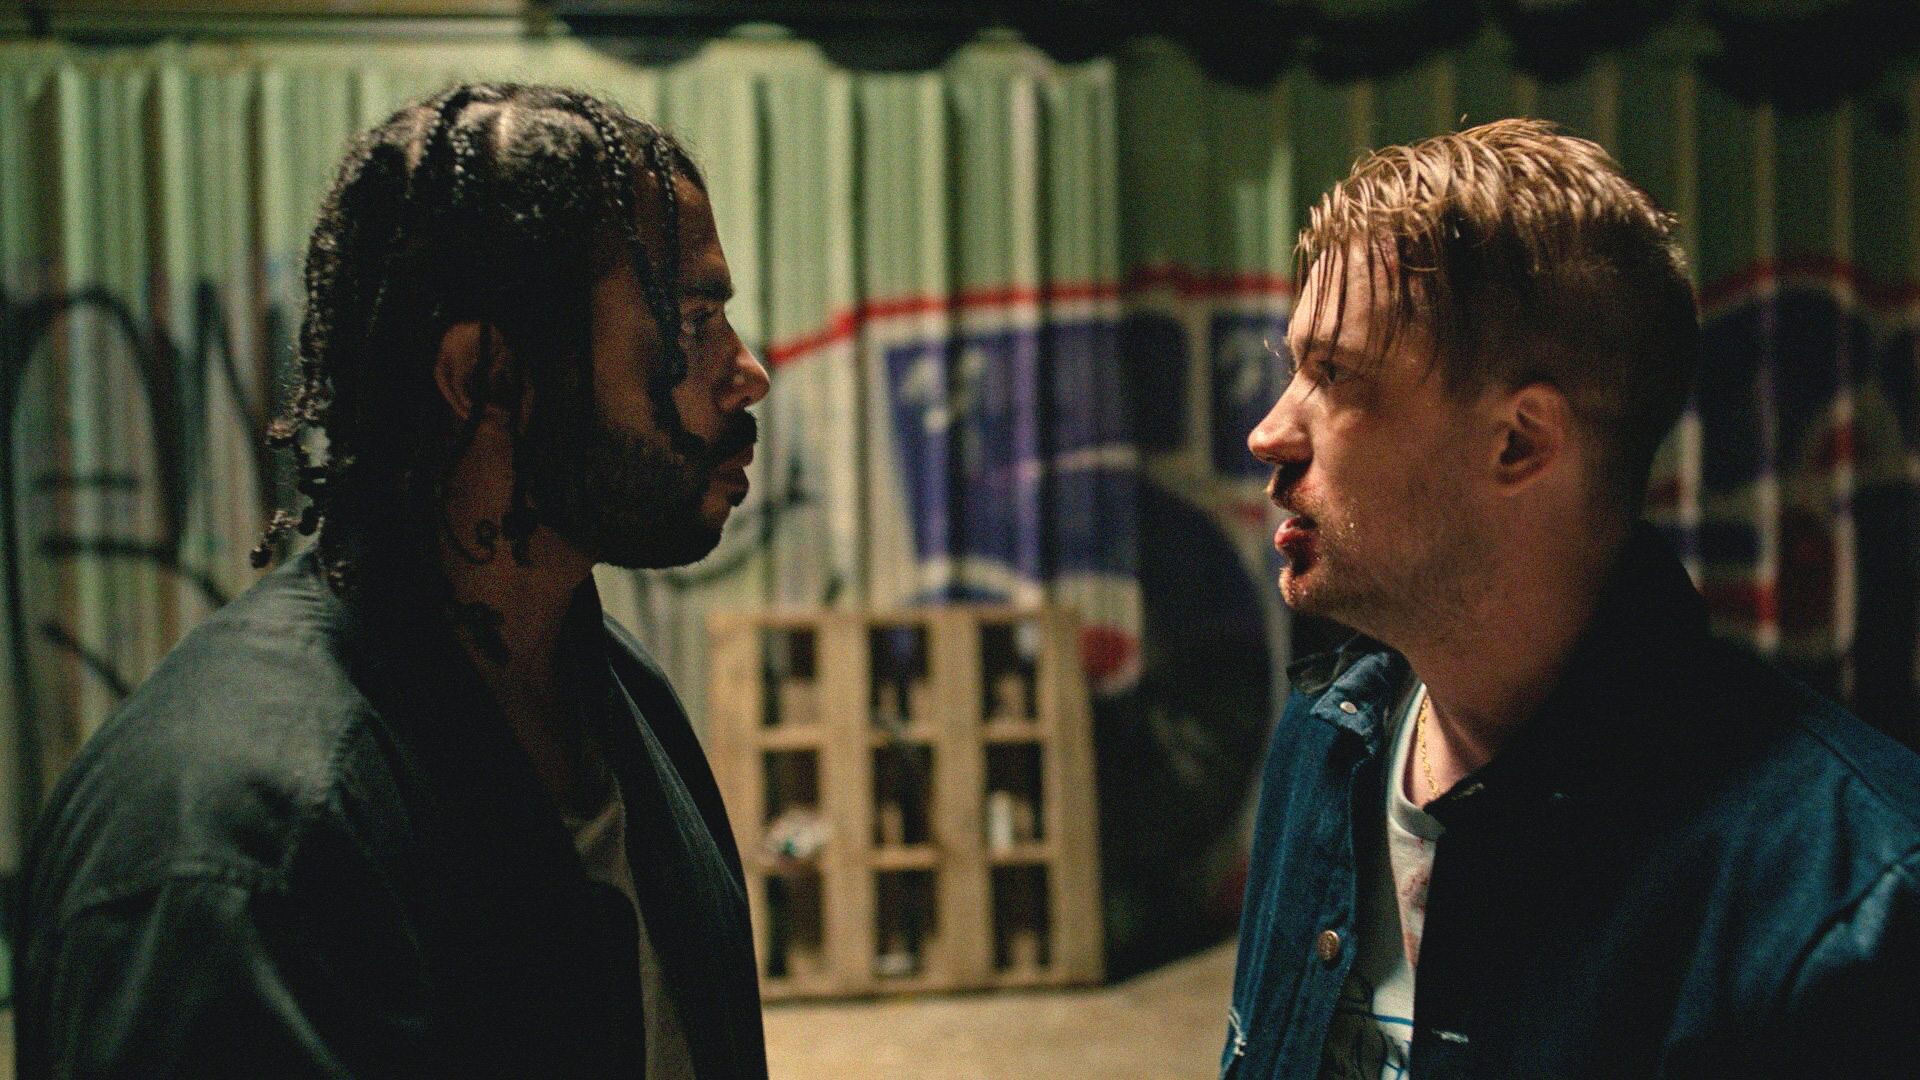 blindspotting---still-1_38613675816_o.jpg